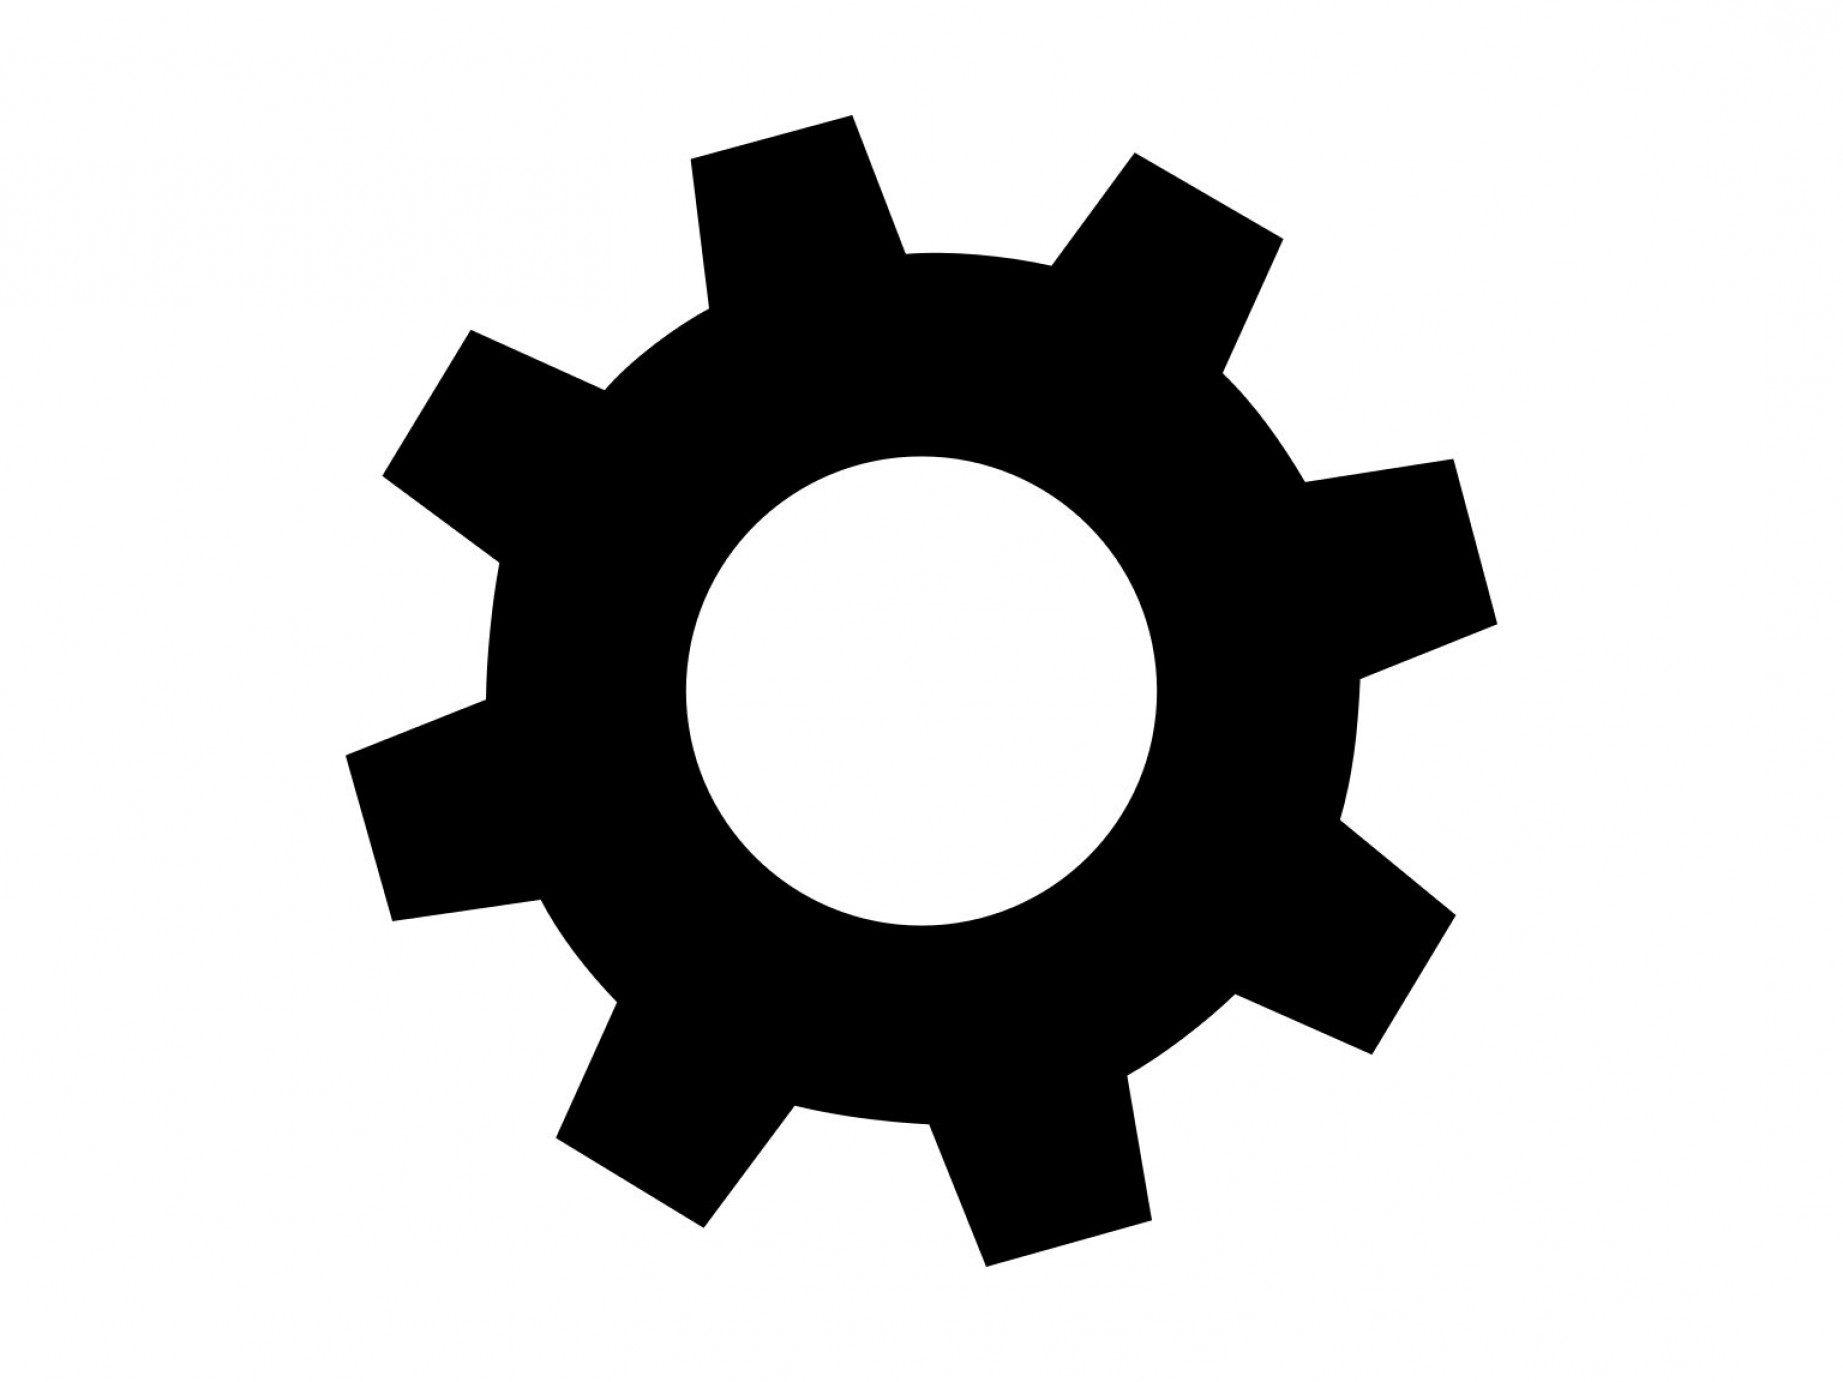 Gear Svg Gears Silhouette Clipart Dxf.